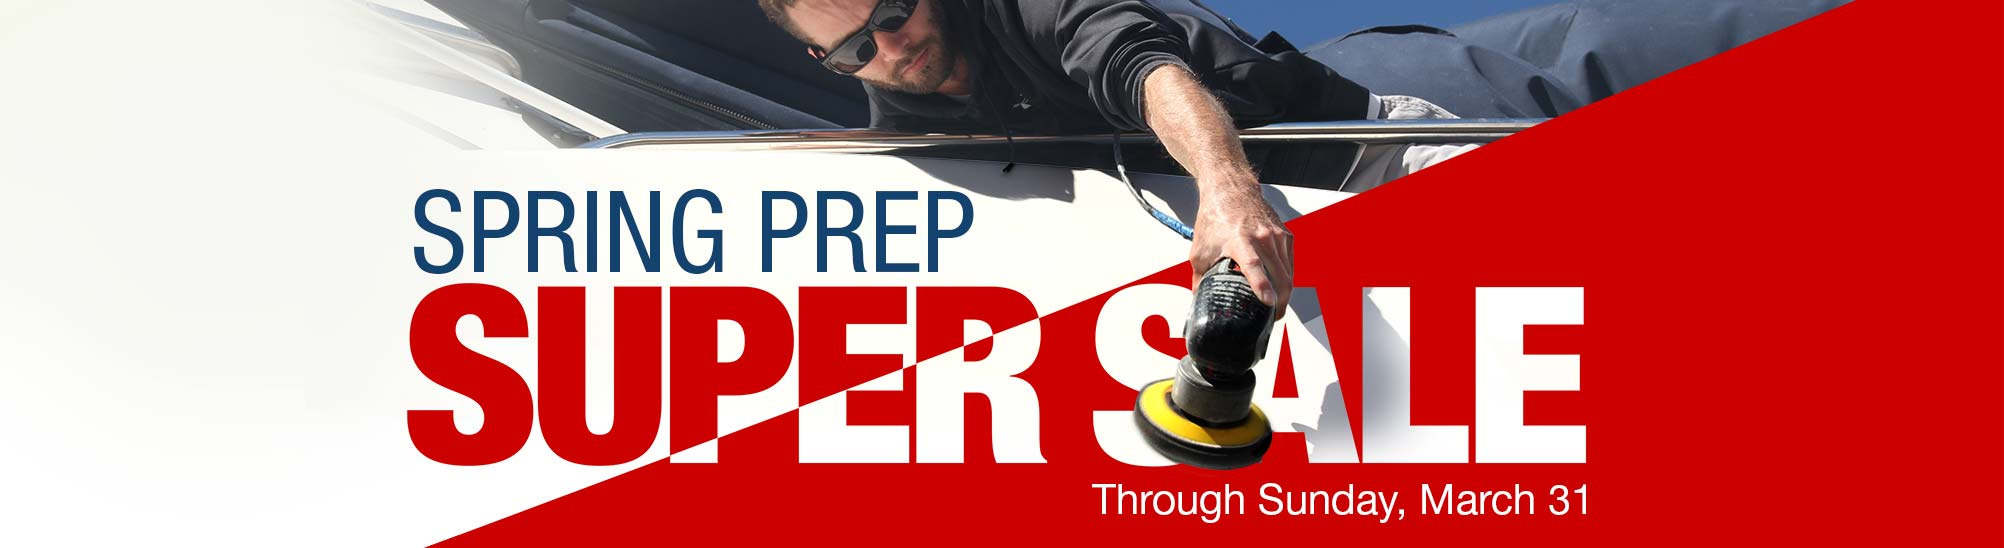 Spring Prep Super Sale, Through Sunday, March 31